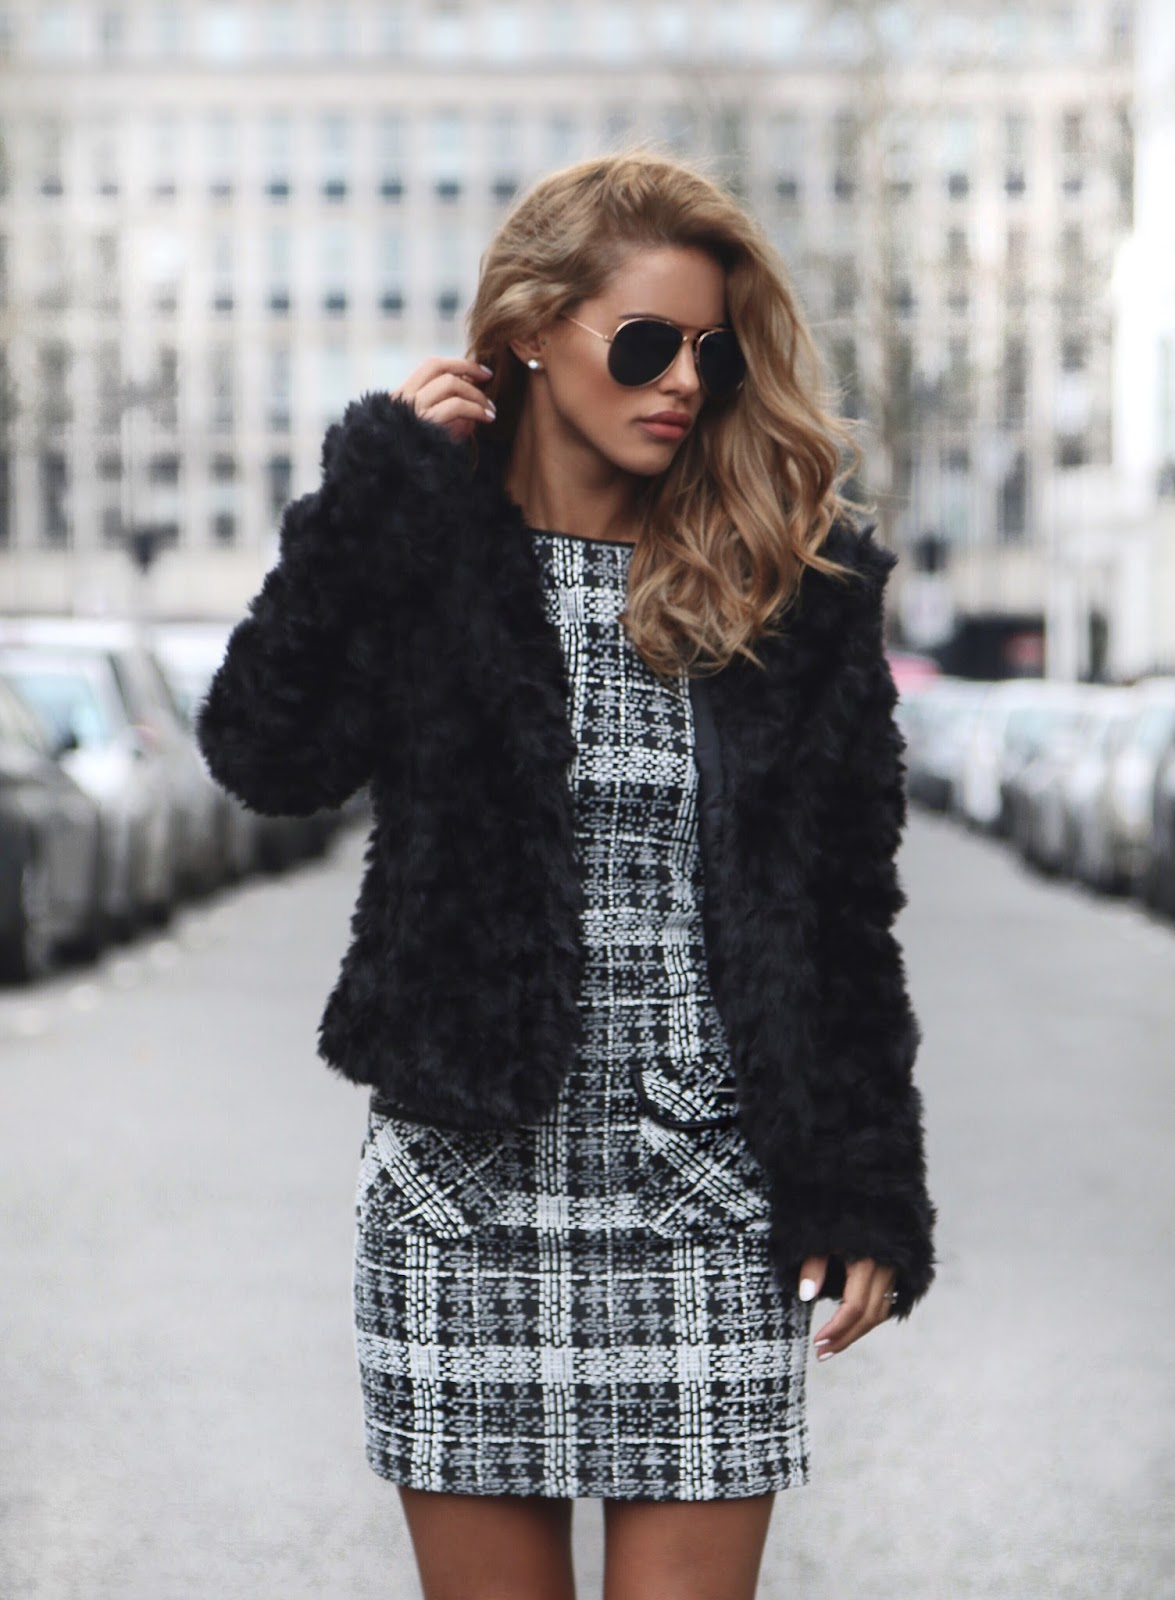 Nada Adelle looks ultra glam in this monochrome check mini dress from Dorothy Perkins. To recreate this look, try wearing your own statement dress with a faux fur coat and simple ankle boots. Faux Fur Jacket: Quiz, Dress: Dorothy Perkins, Ankle Boots: Zara.